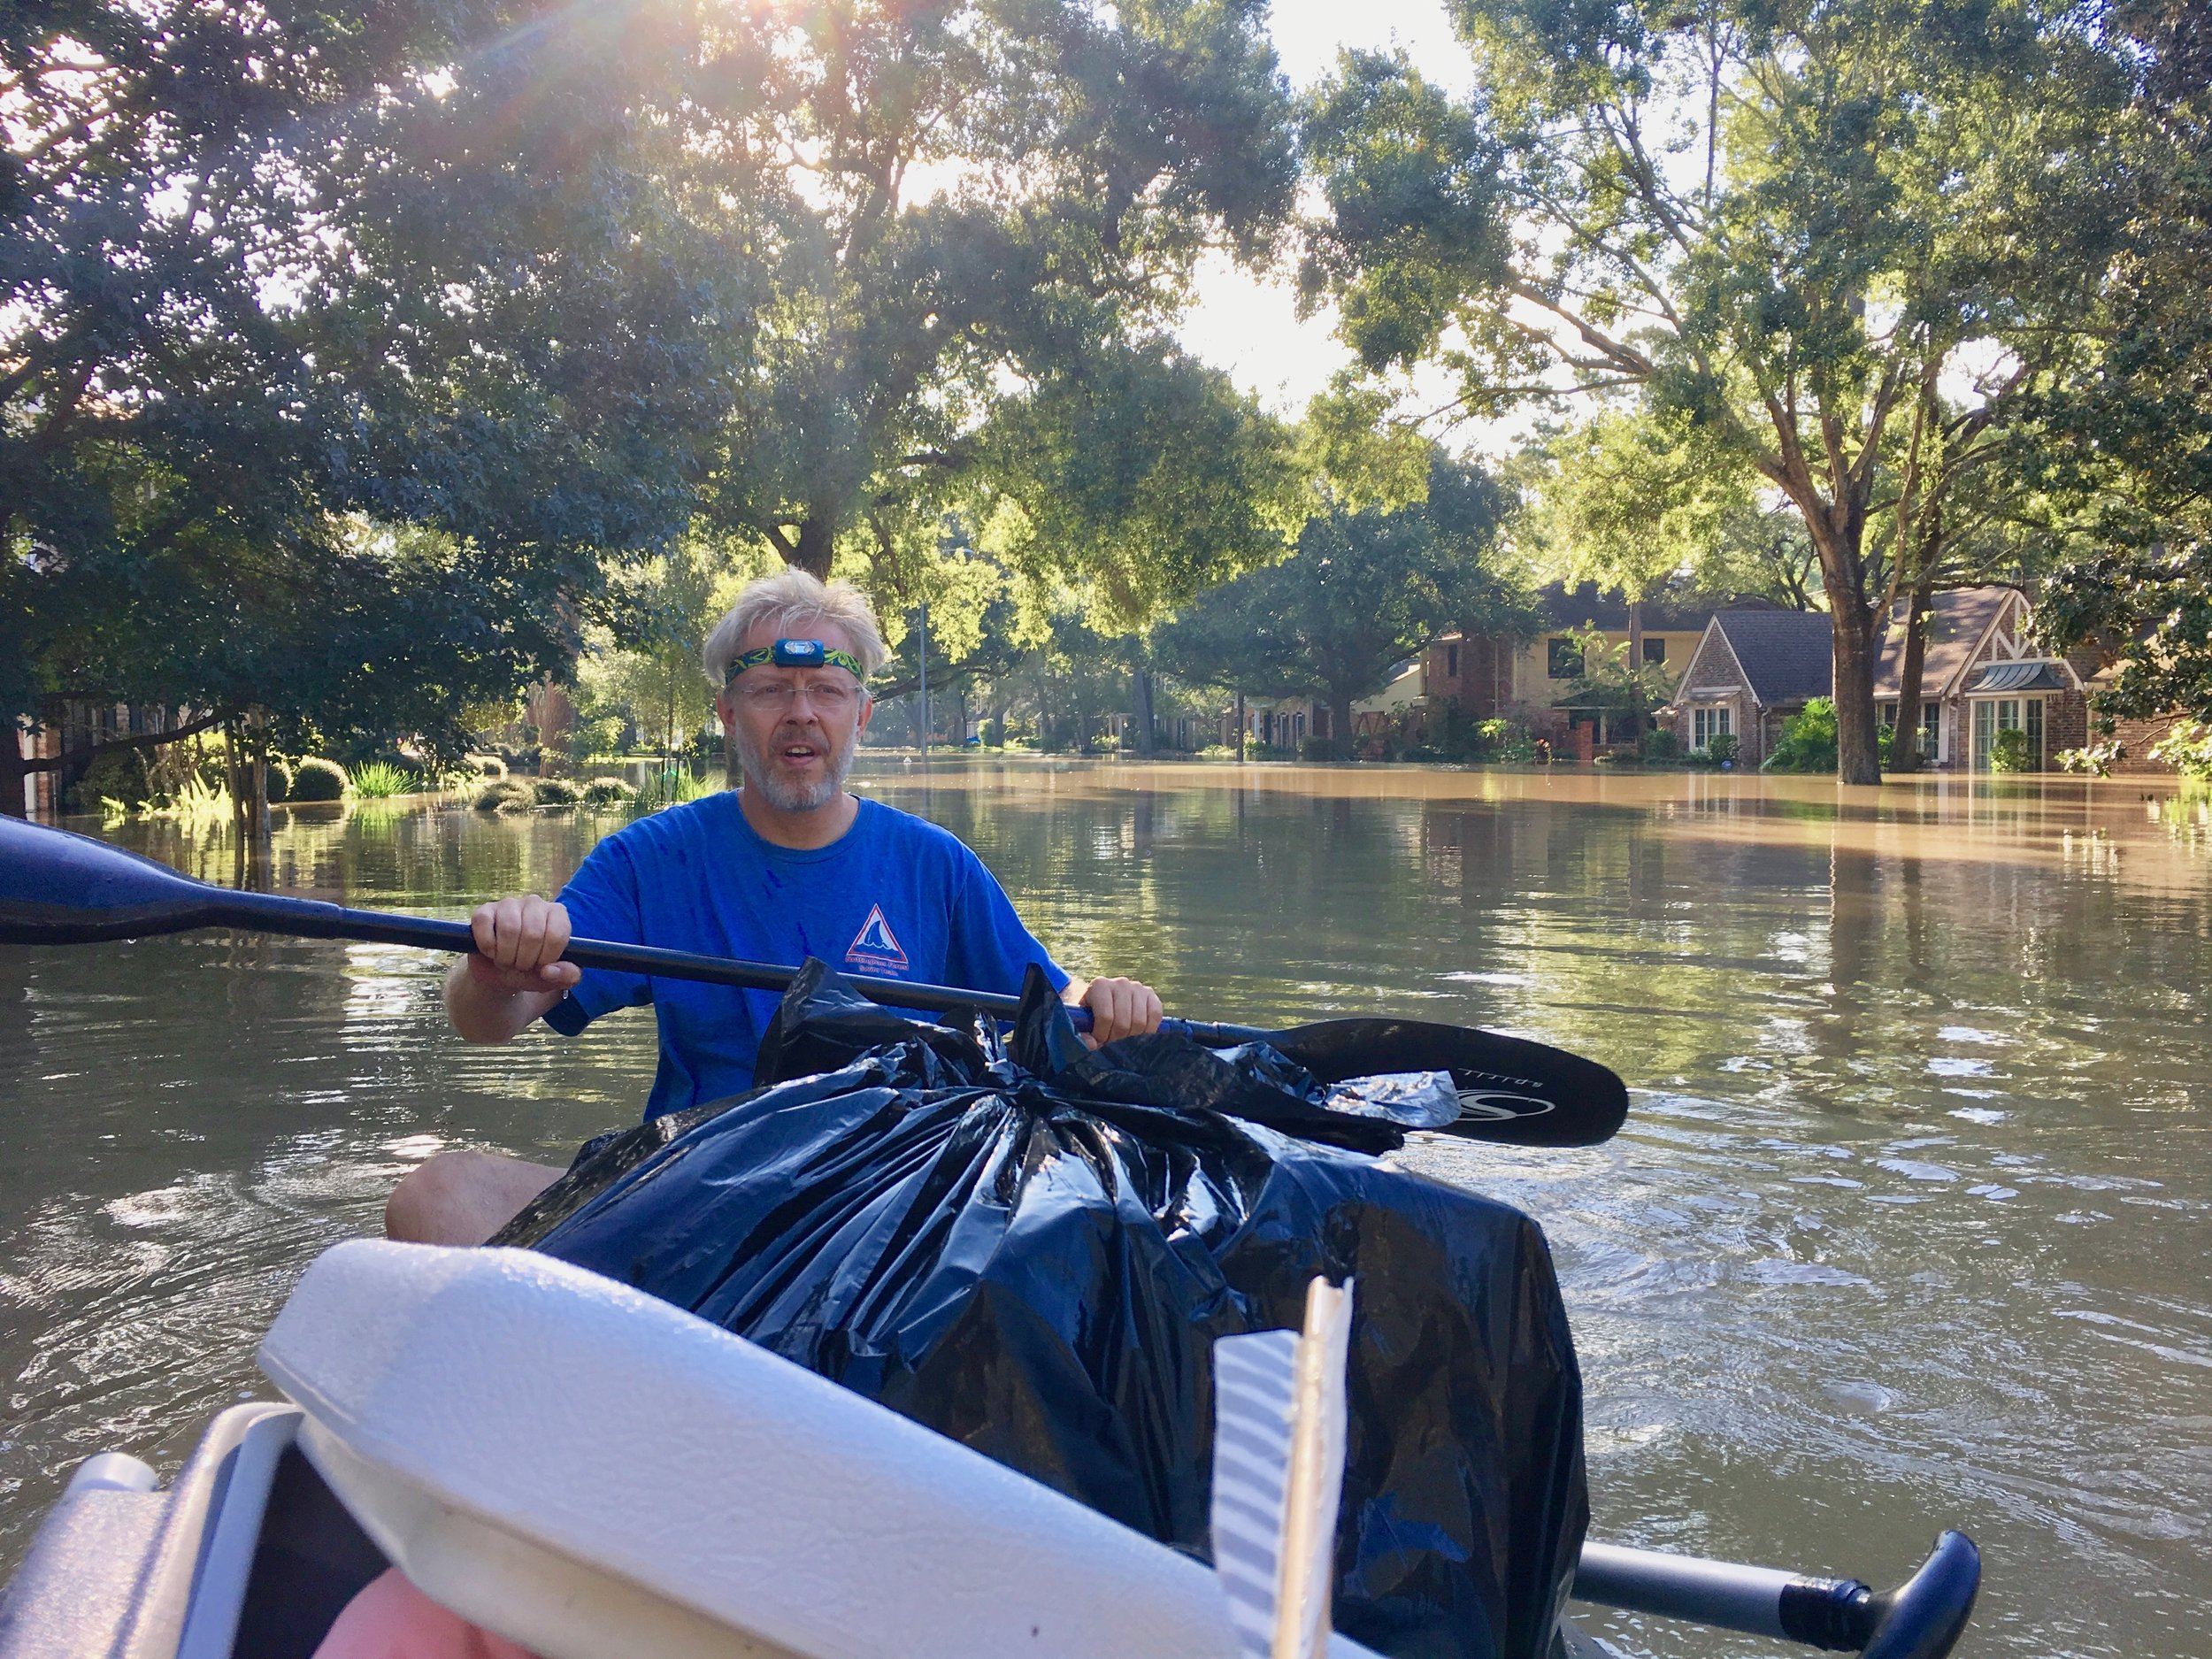 AlphaGlider client recovering personal items from his family's flooded home in Houston, September 2017